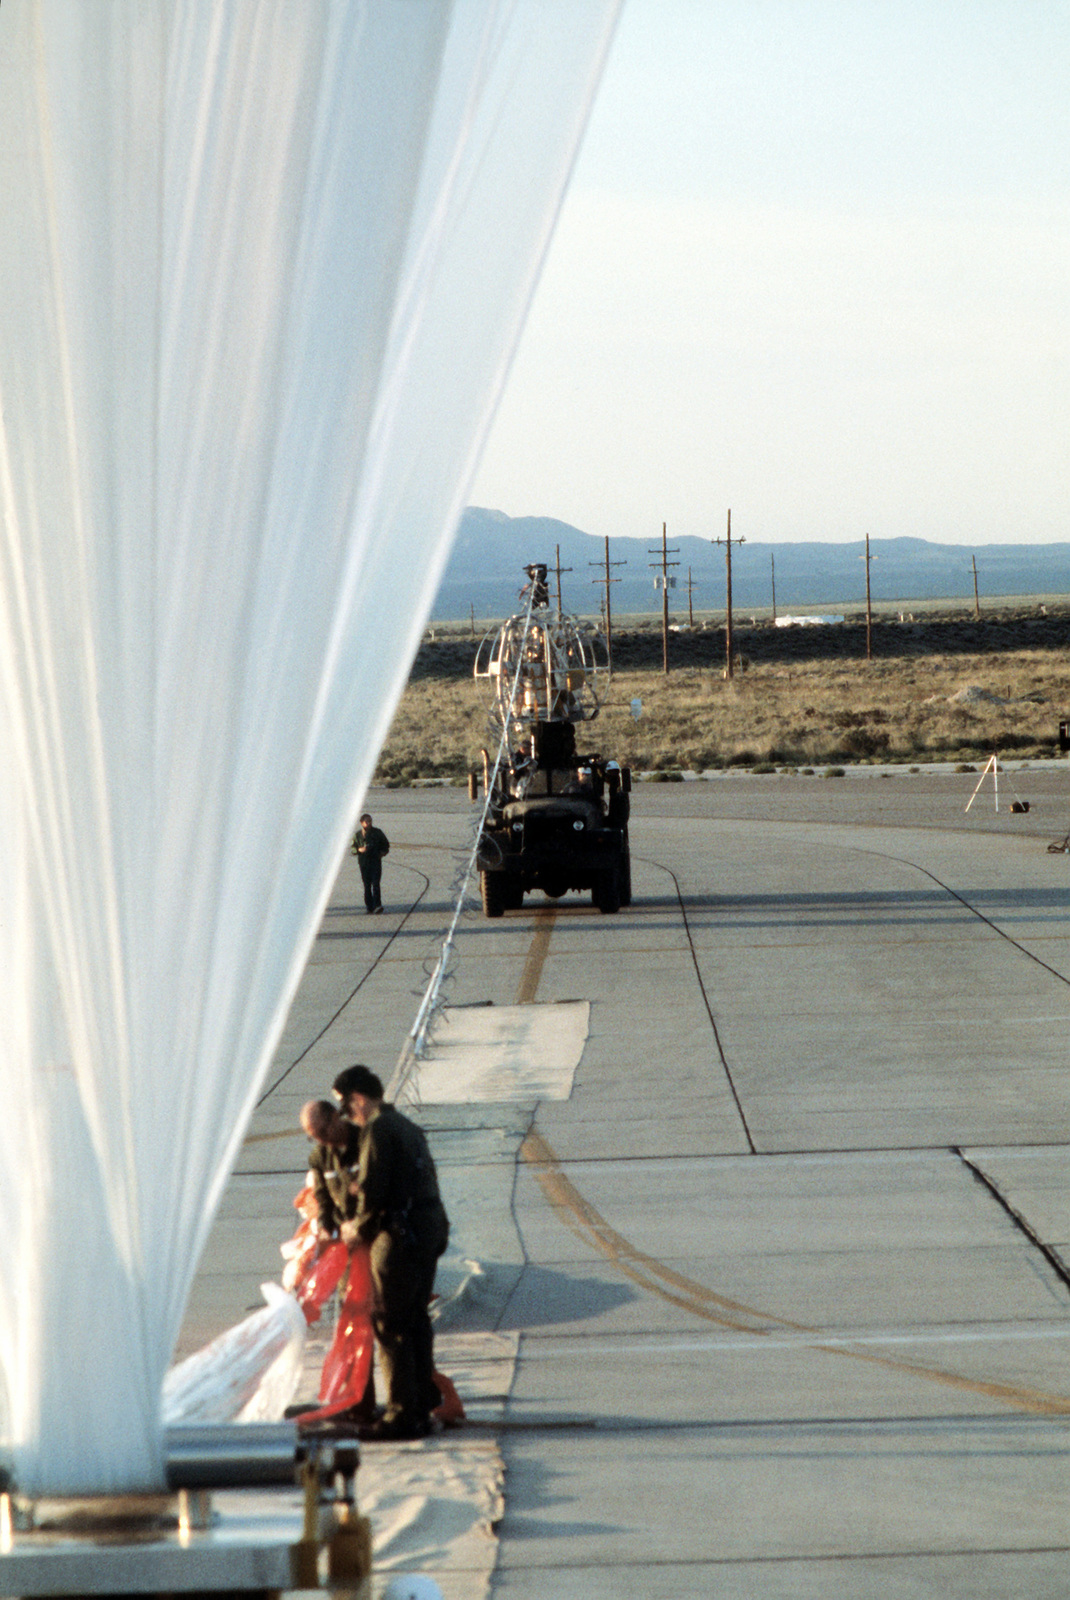 A helium-filled balloon is readied for lift-off by members of the Balloon Research and Development Test Branch, Air Force Geophysics Laboratory